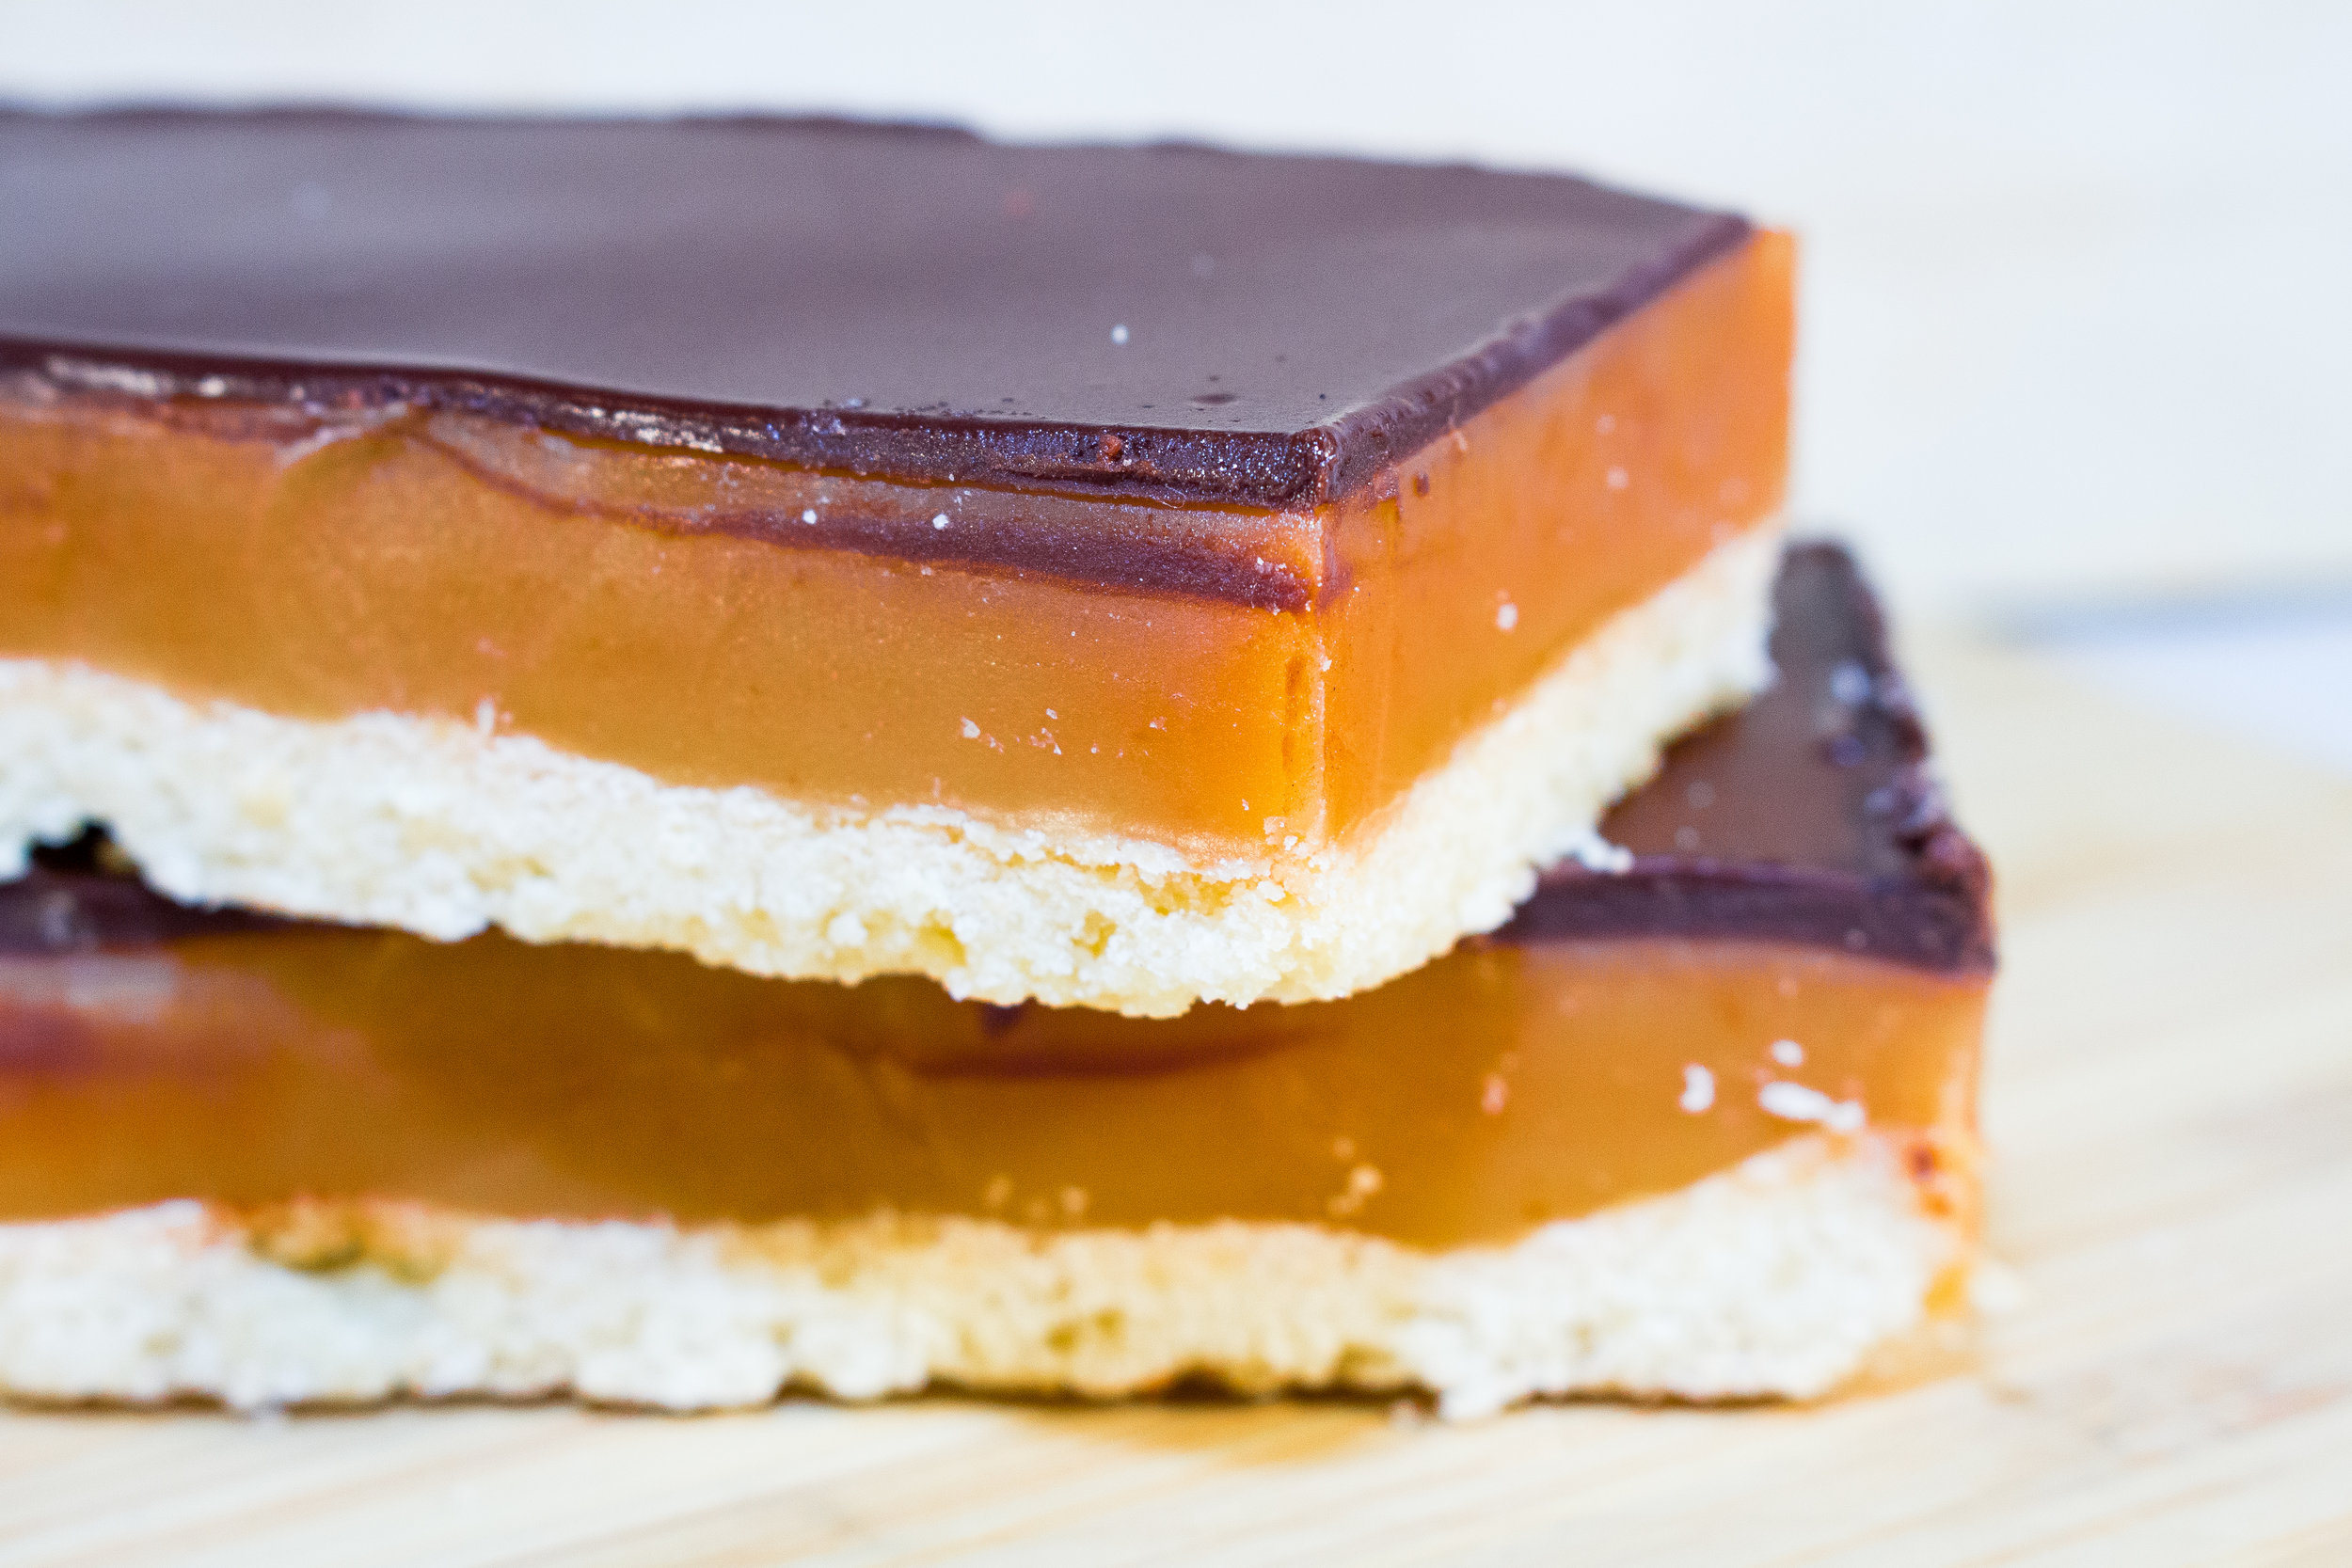 CARAMEL BAR² ⁴ ⁷ - A CRUNCHY SHORTBREAD BASE TOPPED WITH OUR DELICIOUS SALTED CARAMEL AND A LAYER OF MILK CHOCOLATE